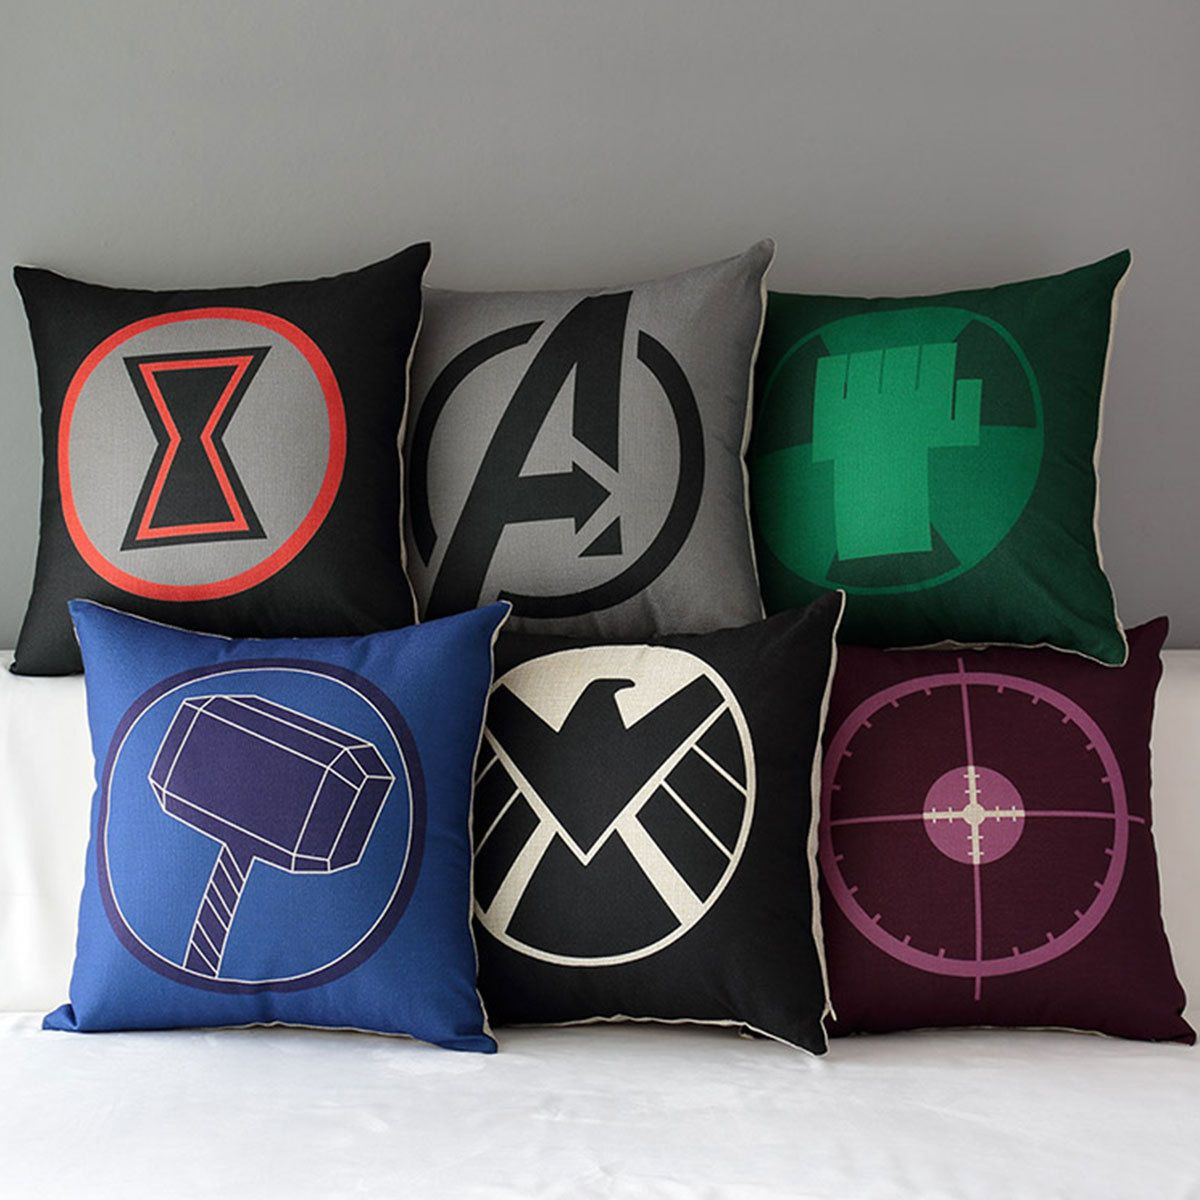 Marvel Avengers Pillows Avengers Pillow